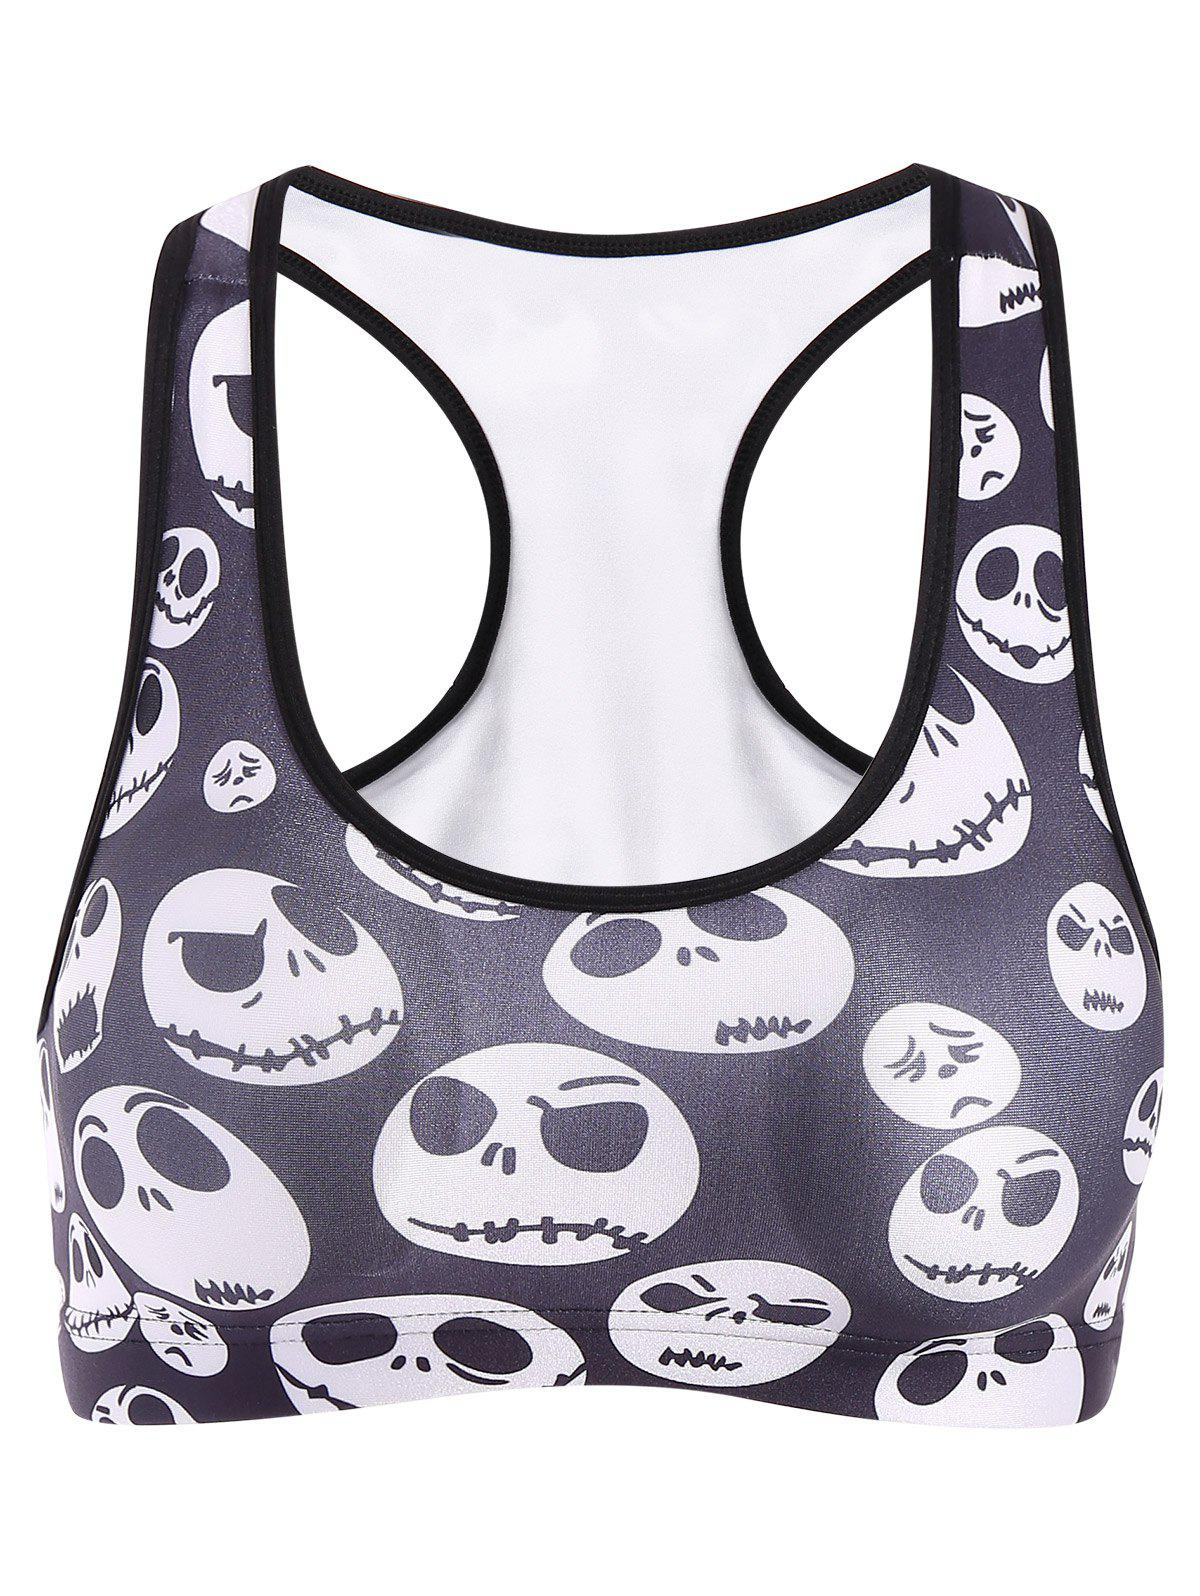 Active Skull Print Sport Crop Top For Women